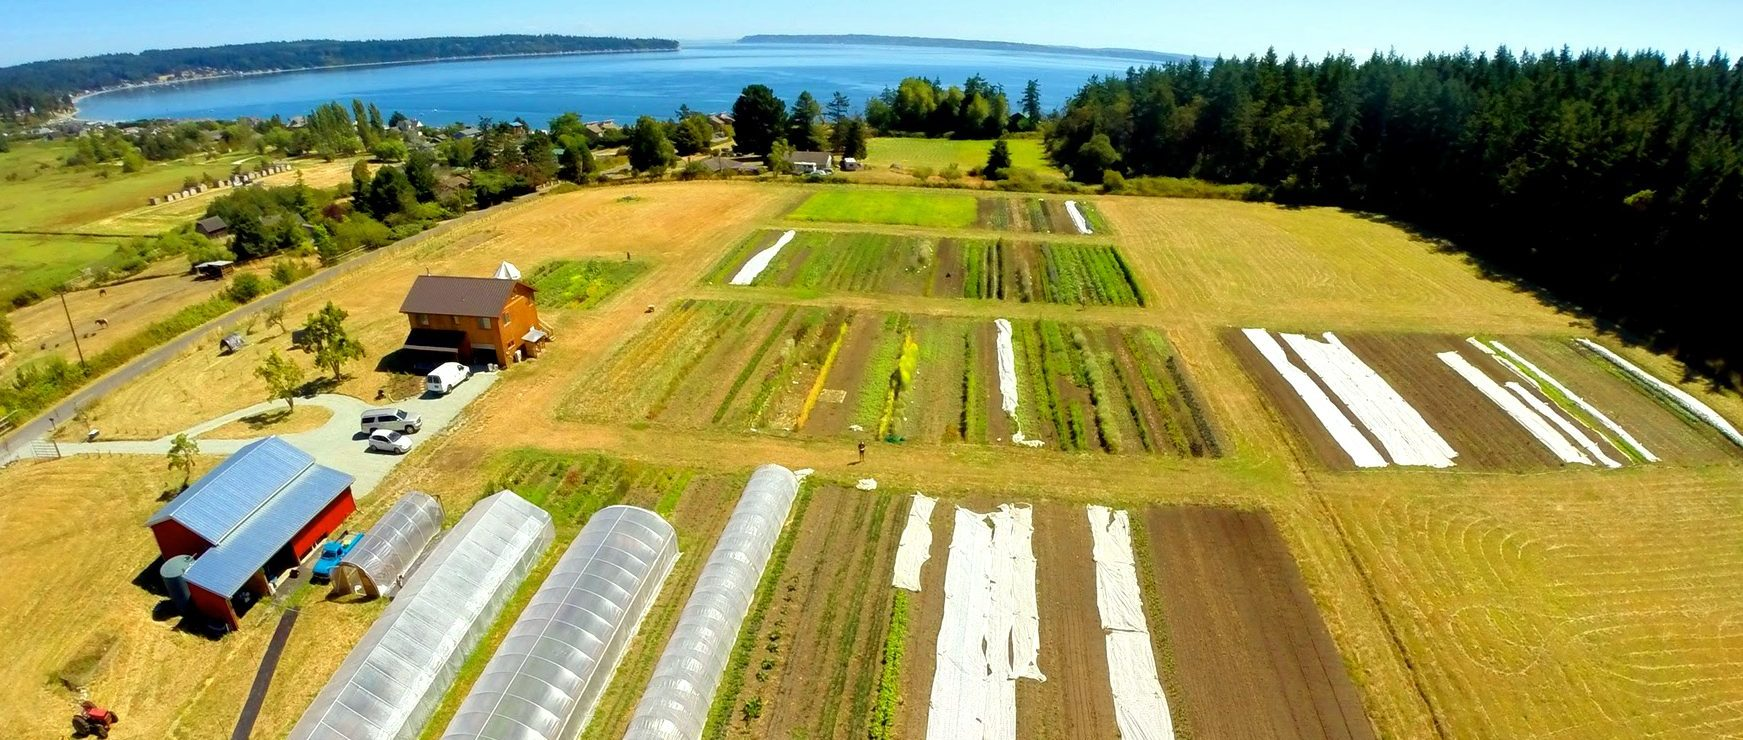 An image of Deep Harvest Farm that provides seeds to the northwest.